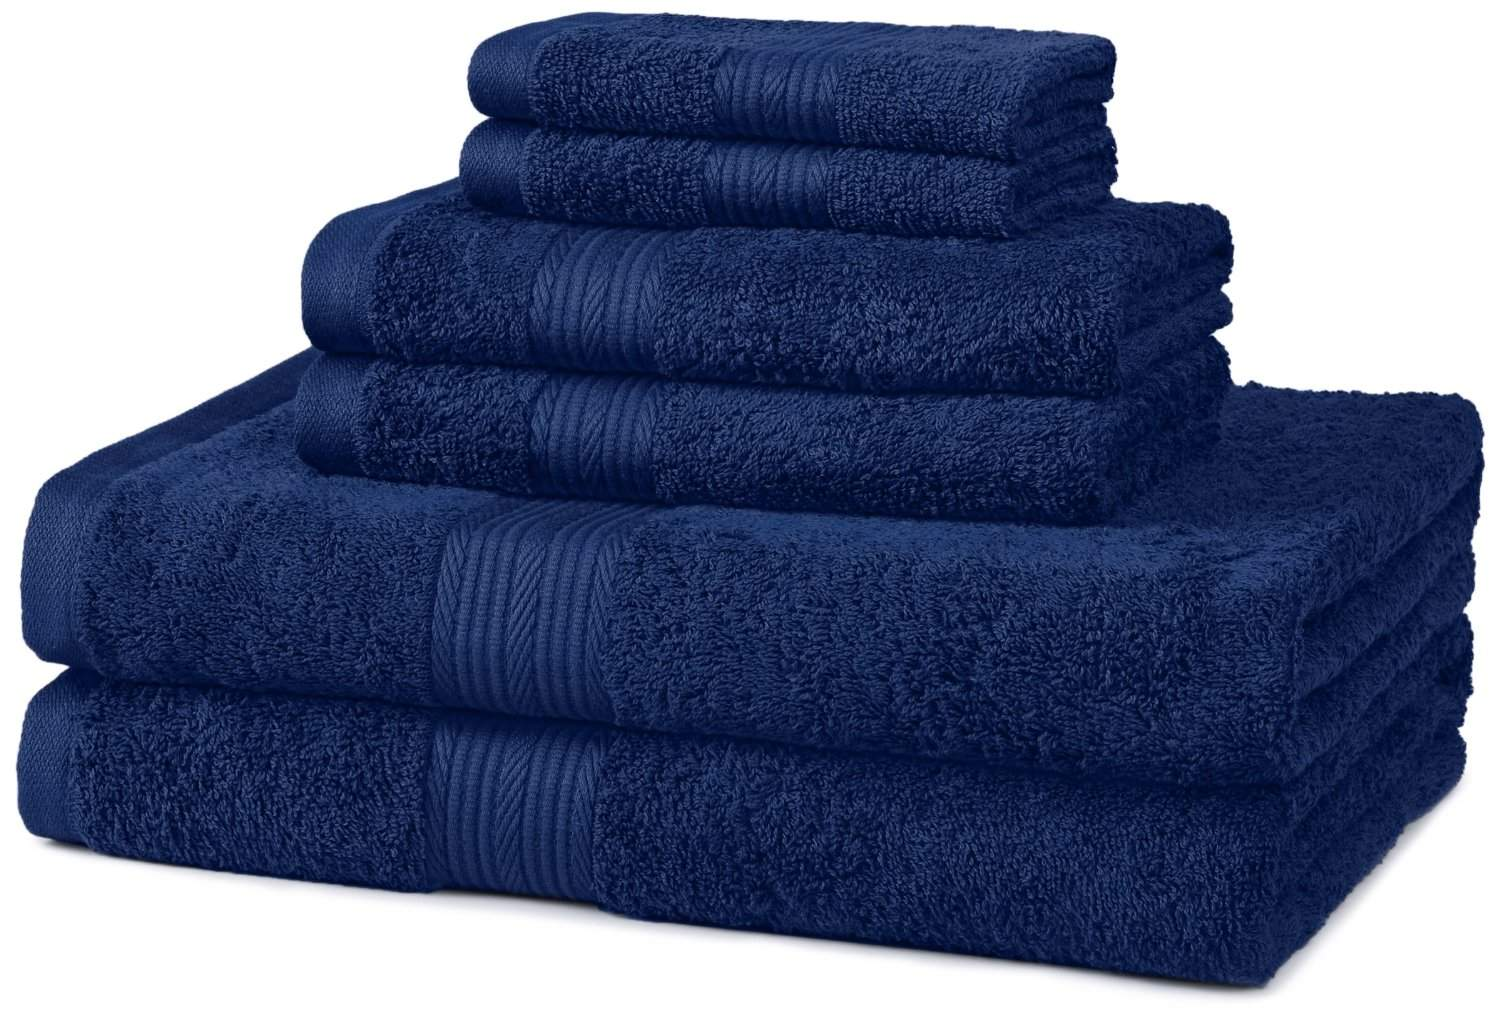 towels by gus reviews